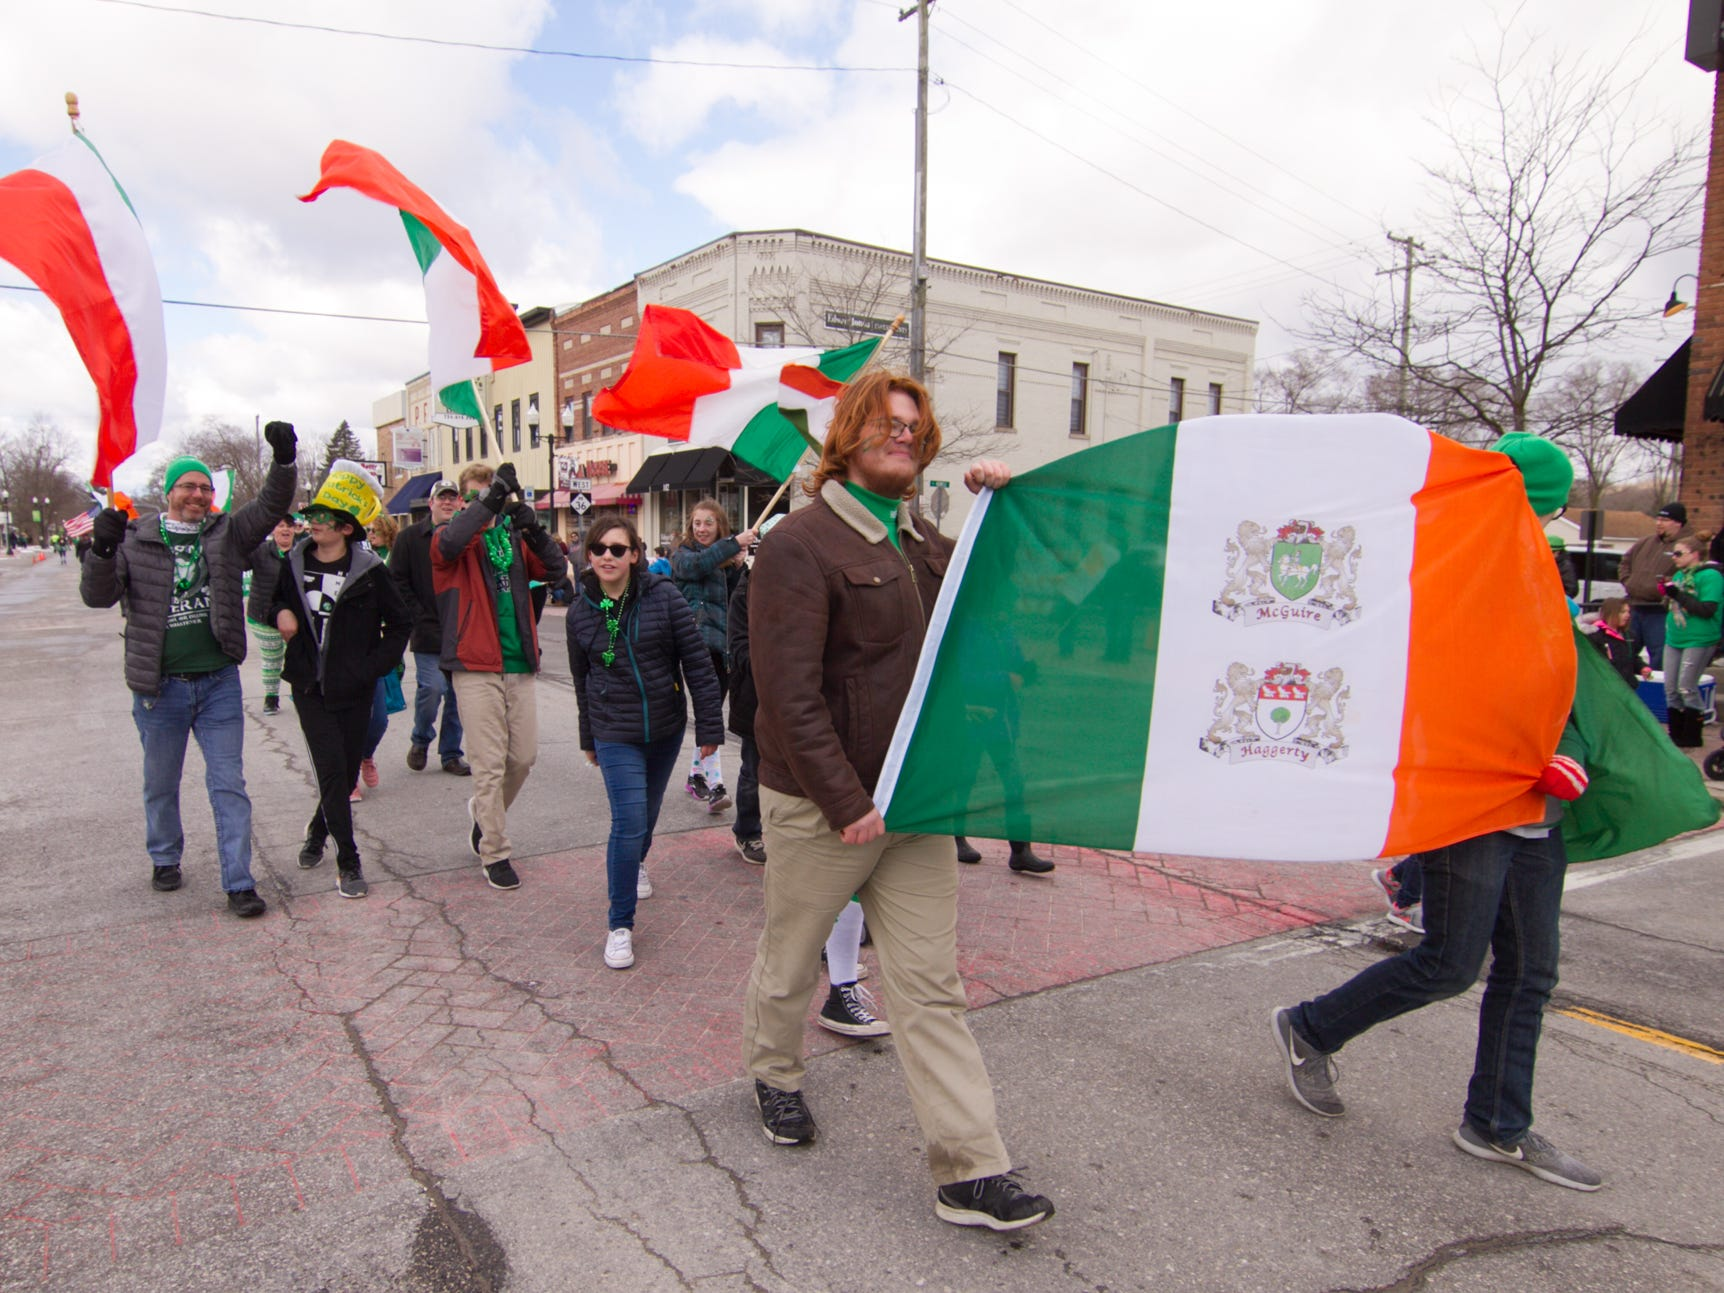 Members of the McGuire/Haggerty family are perennial participants, walking in the St. Patrick's Day parade Saturday, March 16, 2019.